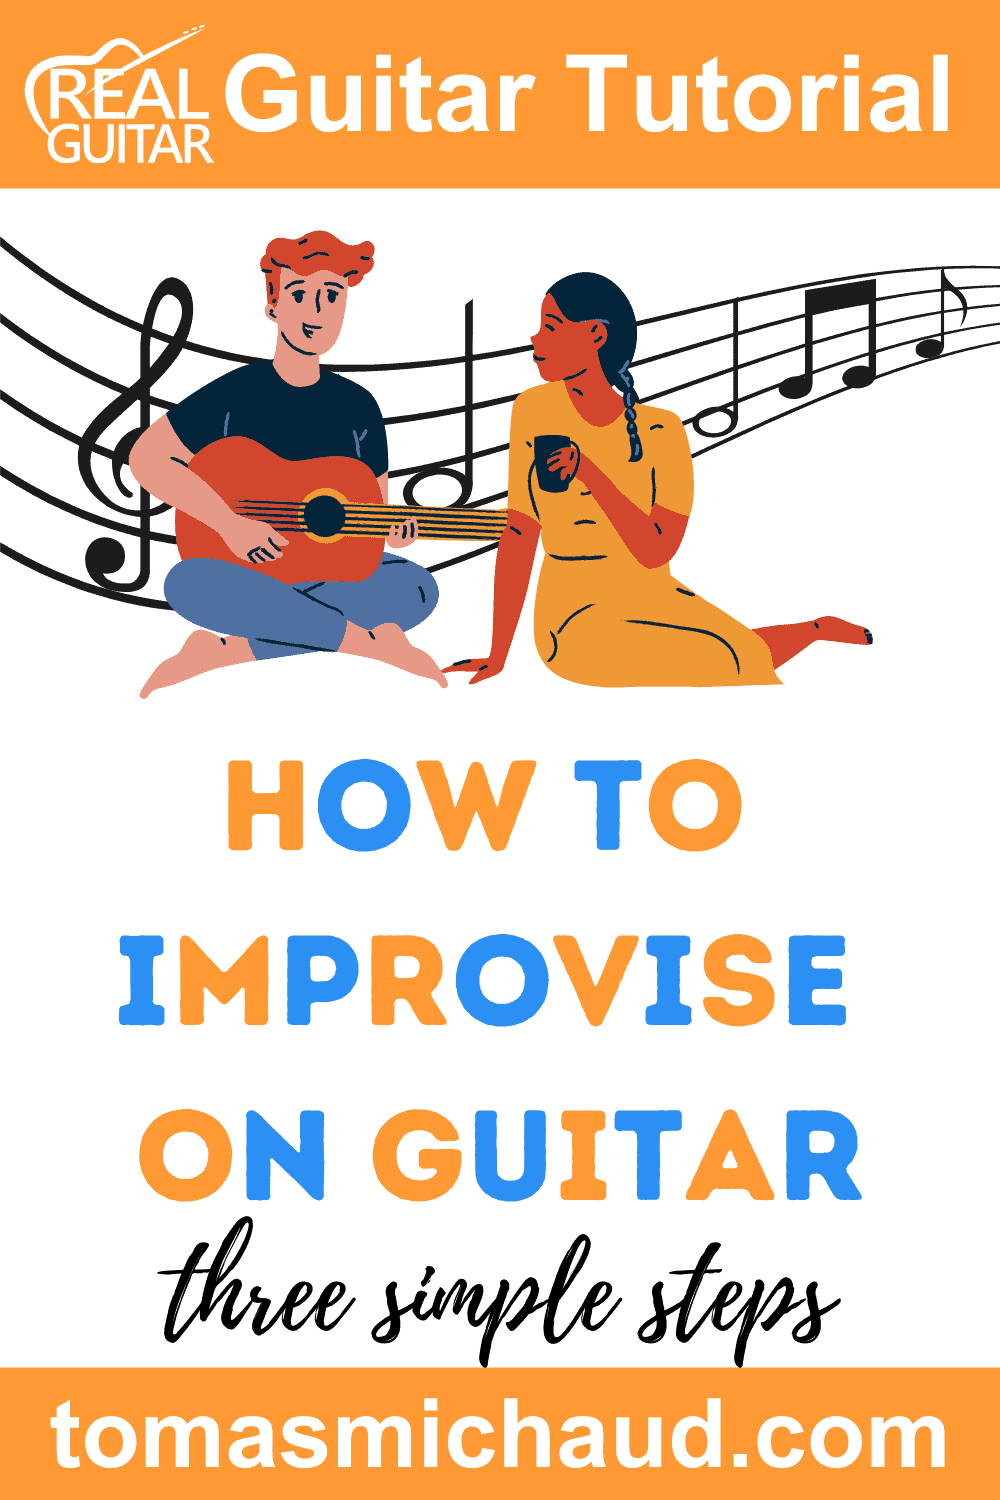 How to Improvise on Guitar